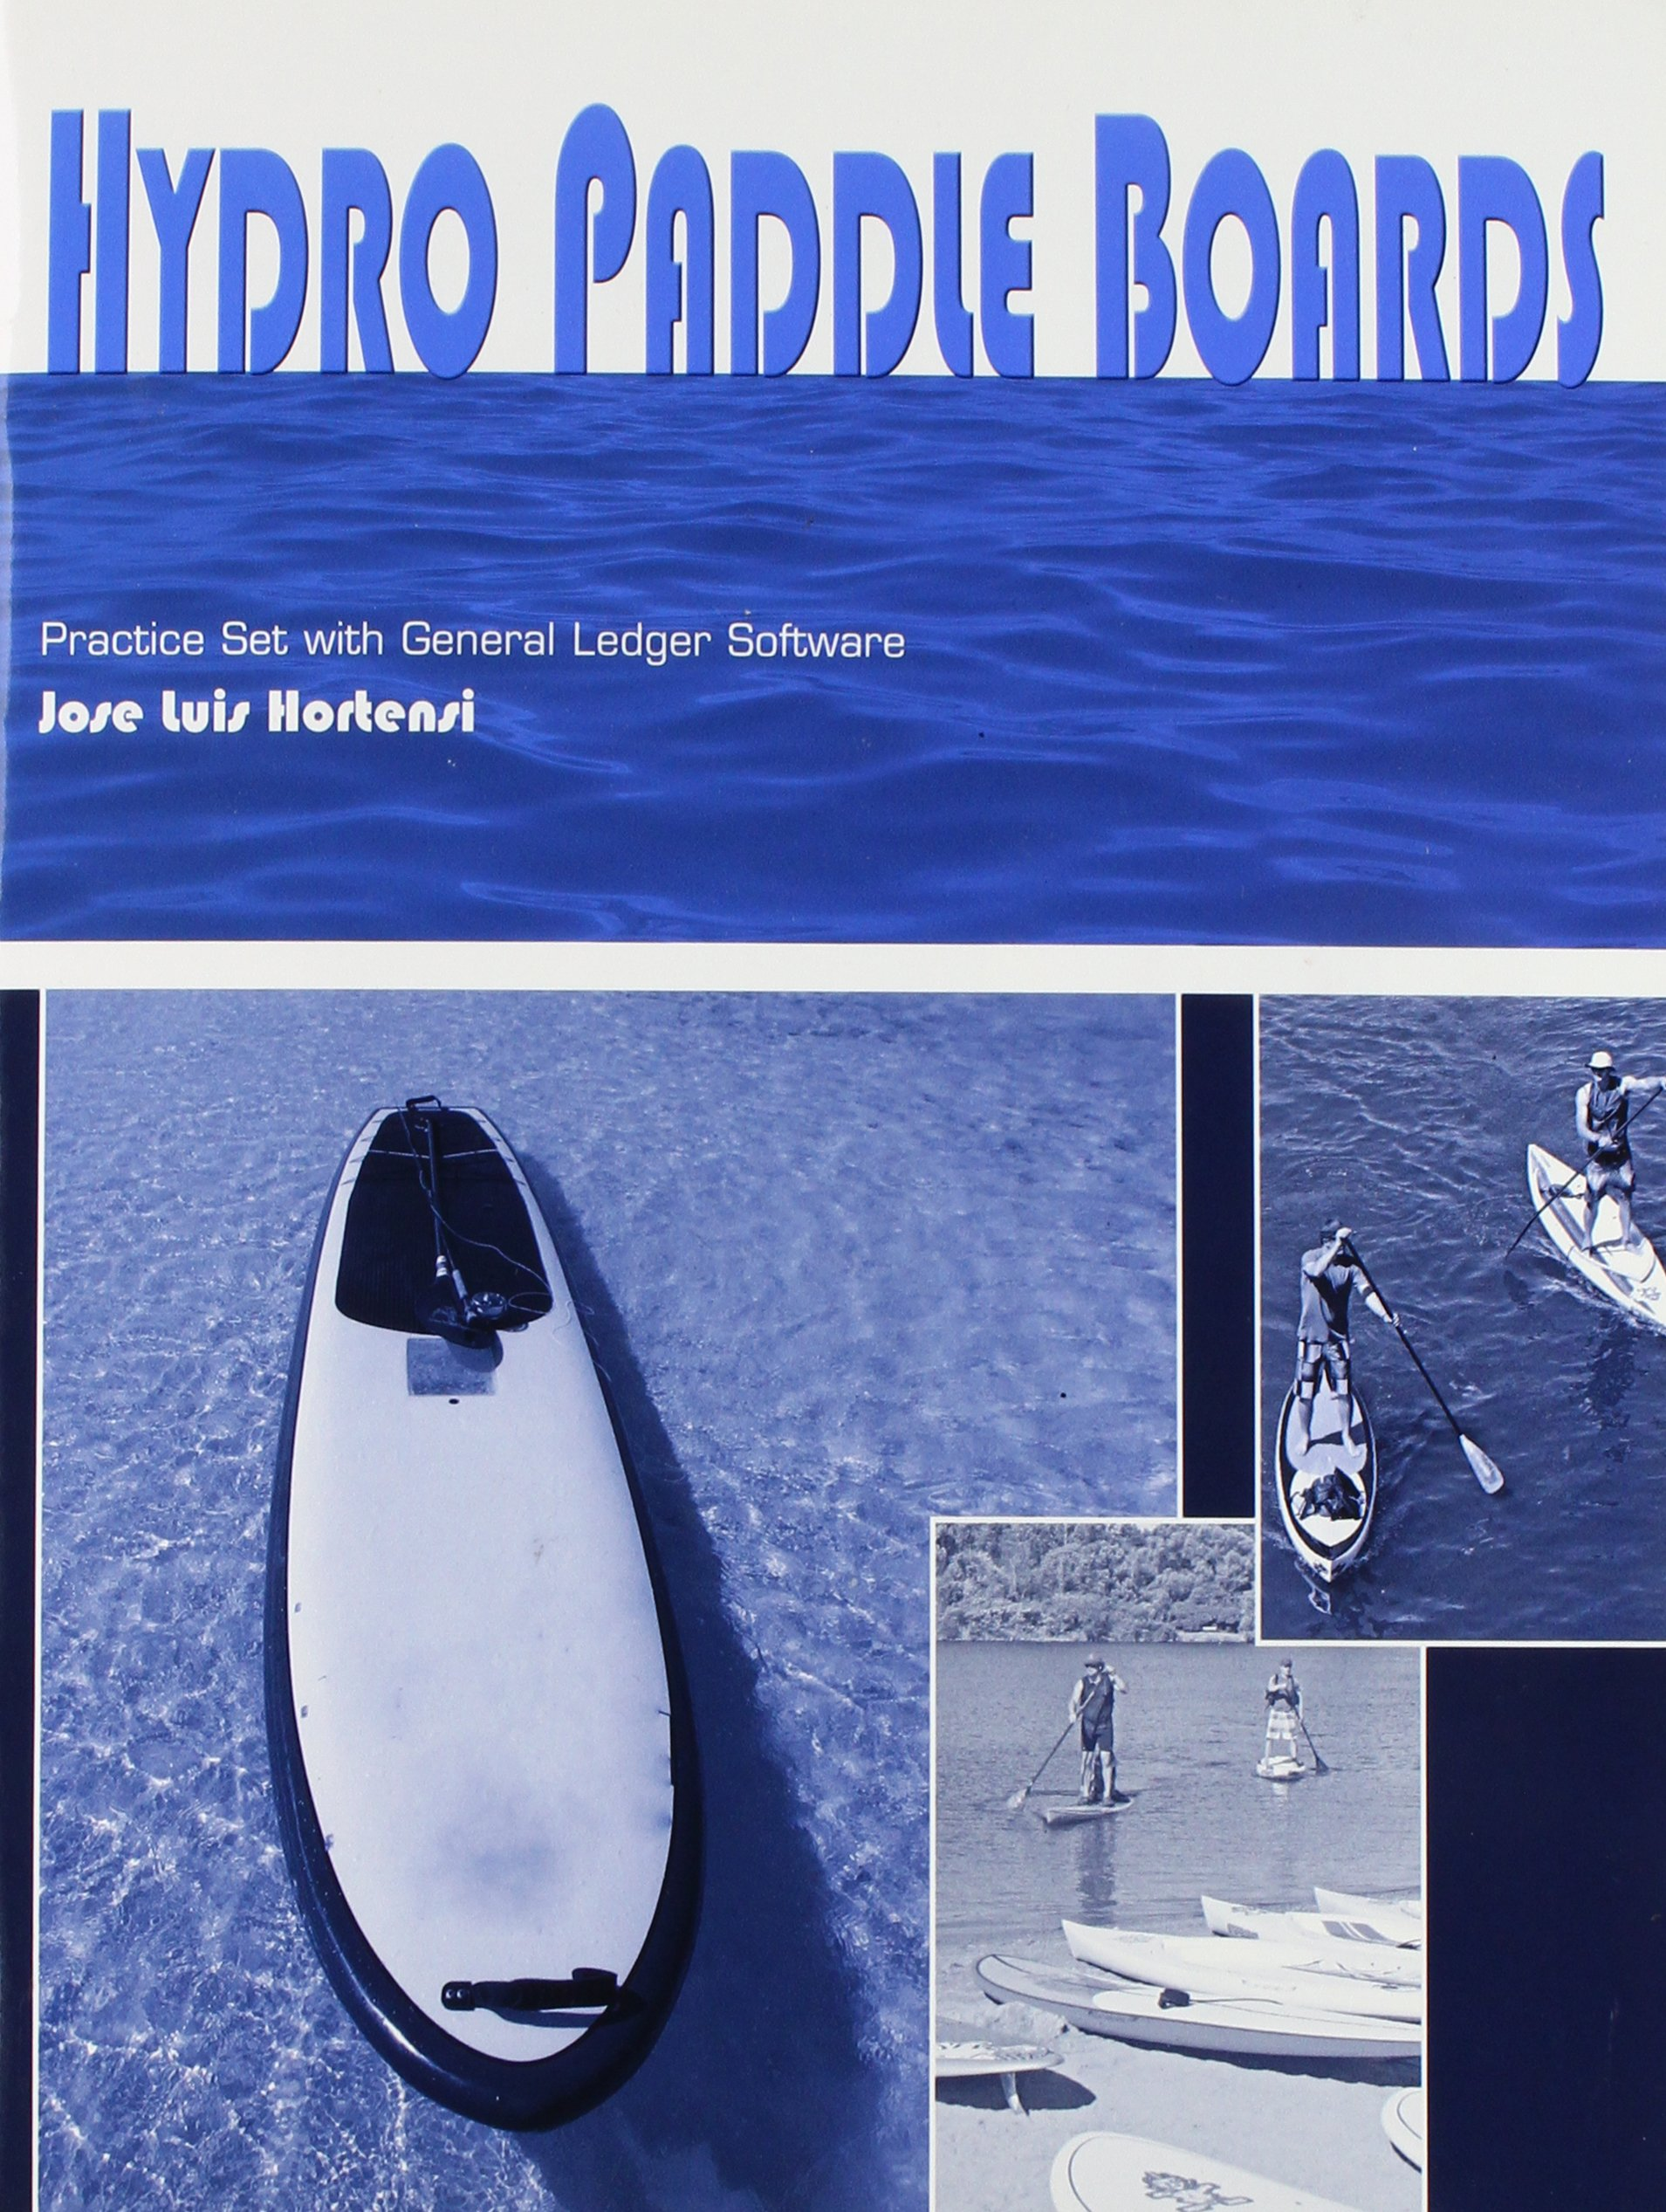 Hydro Paddle Boards Practice Set with Gl Software: Carl S. Warren:  9781285178776: Amazon.com: Books